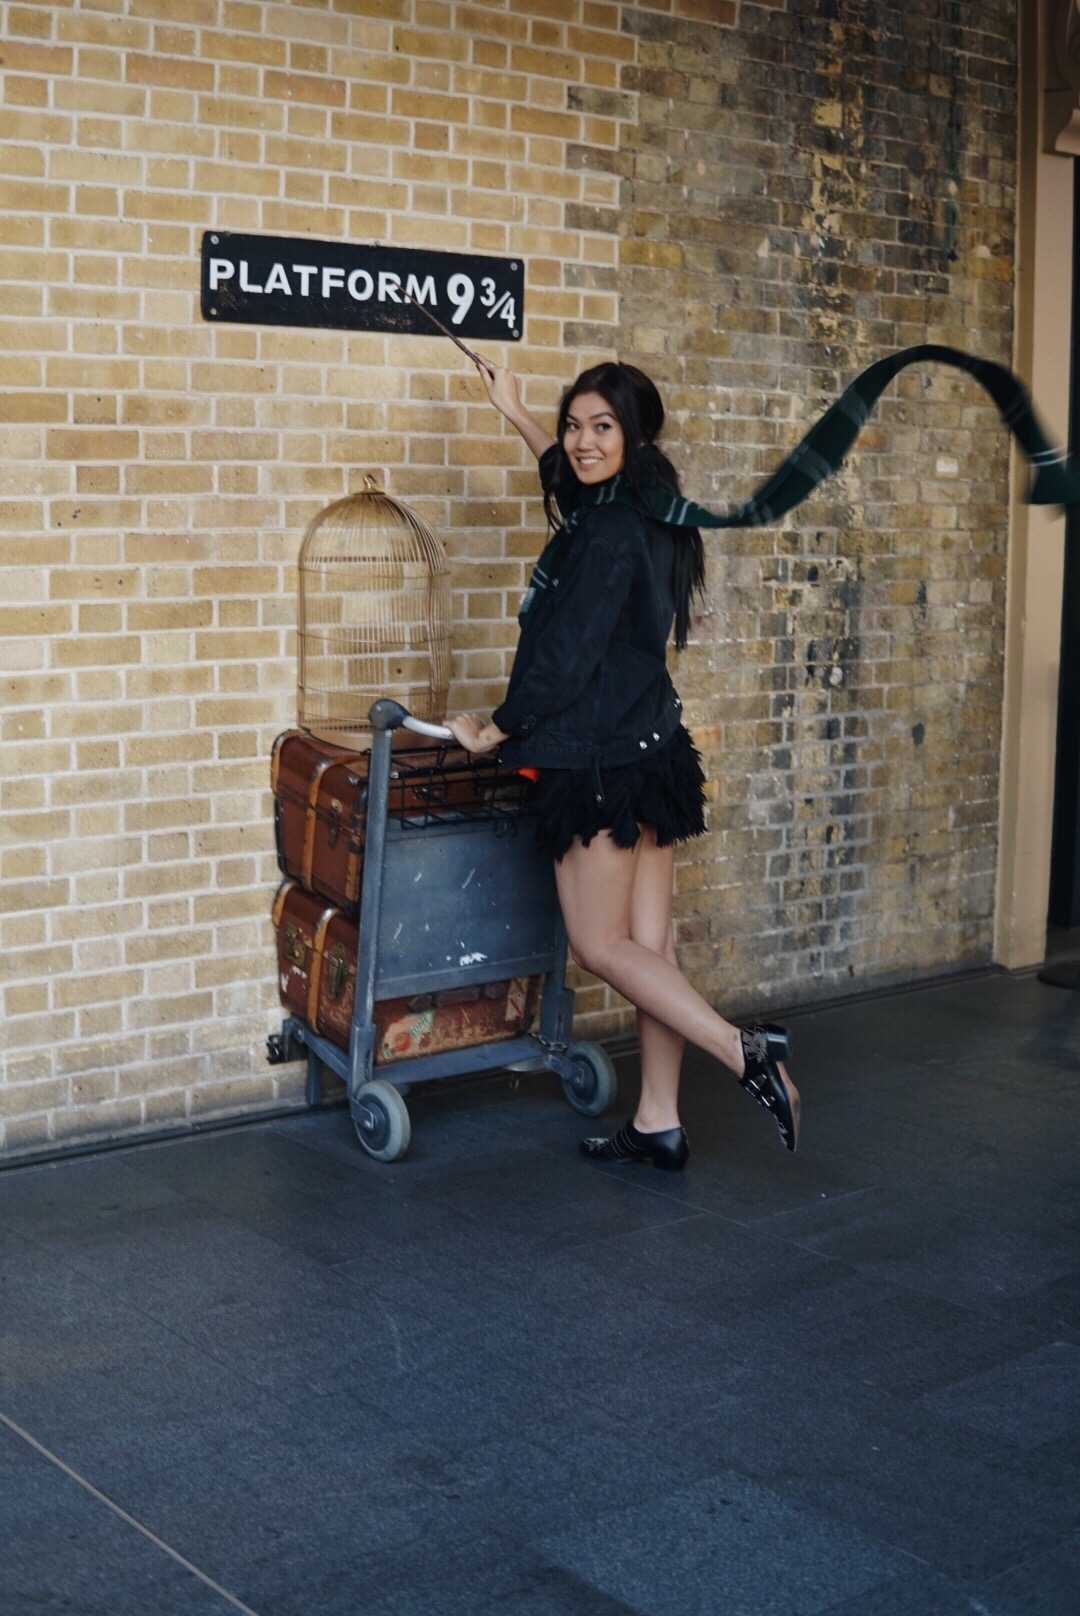 The next day, my one requested stop was fulfilled!Platform 9 3/4, because I am quite the HP fan! We woke up early to get there (Tee was the only who made it on time) and get the famous photo and shop the gift shop!